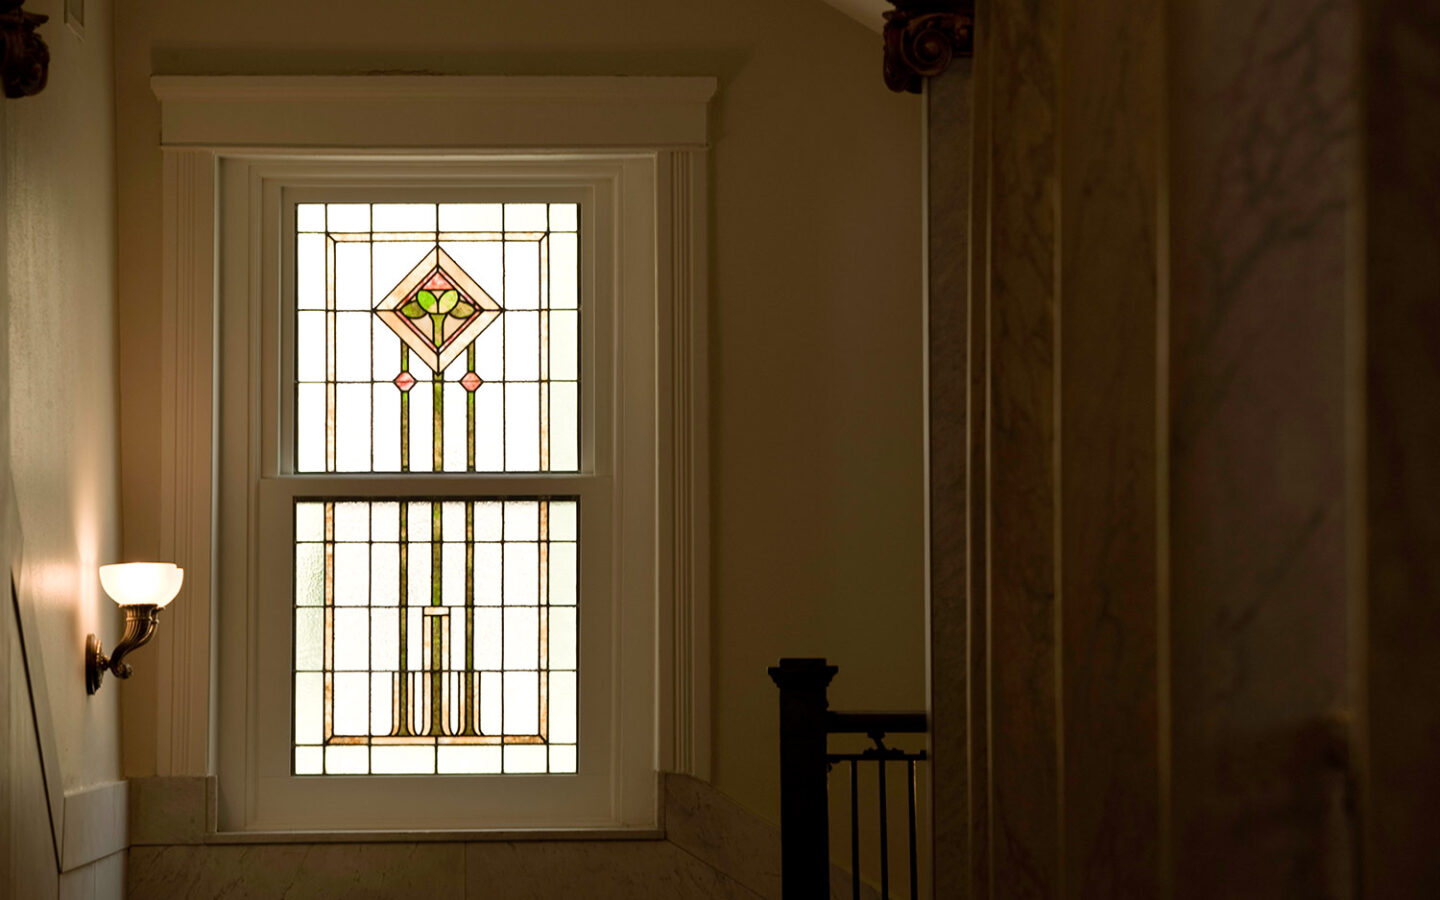 photo of a hallway with a stained glass window at the end